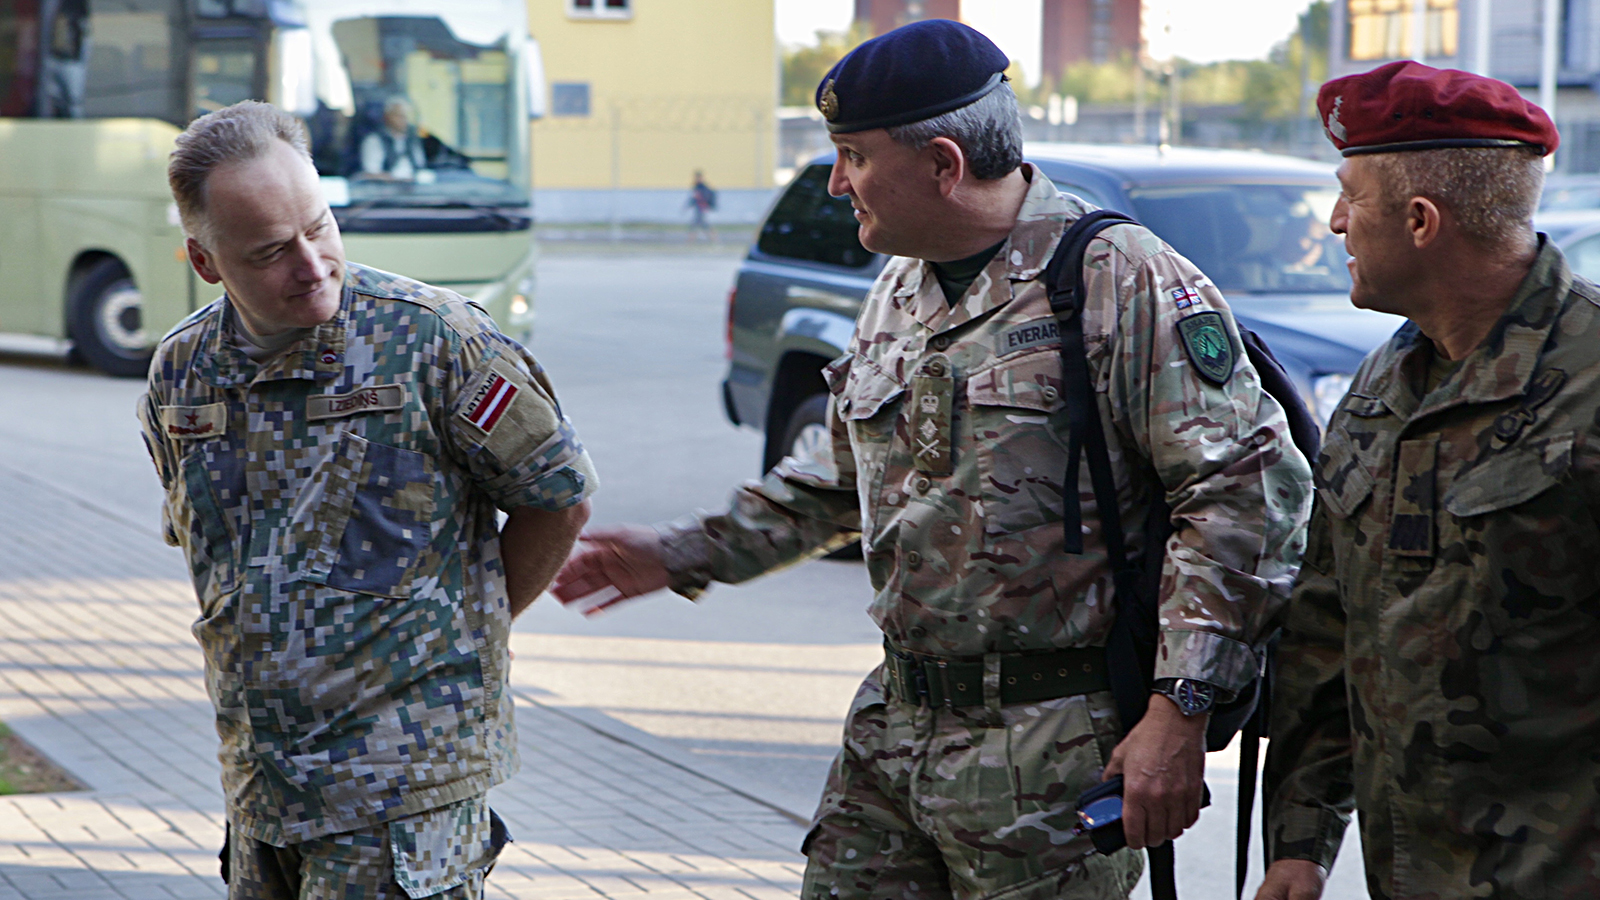 General Sir James Everard, Deputy Supreme Allied Commander Europe, Supreme Headquarters Allied Powers Europe, is greeted by Major General Adam Joks, JFTC Commander and Brigadier General Imants Ziedins, Chief of Staff Latvian Armed Forces Joint HQ